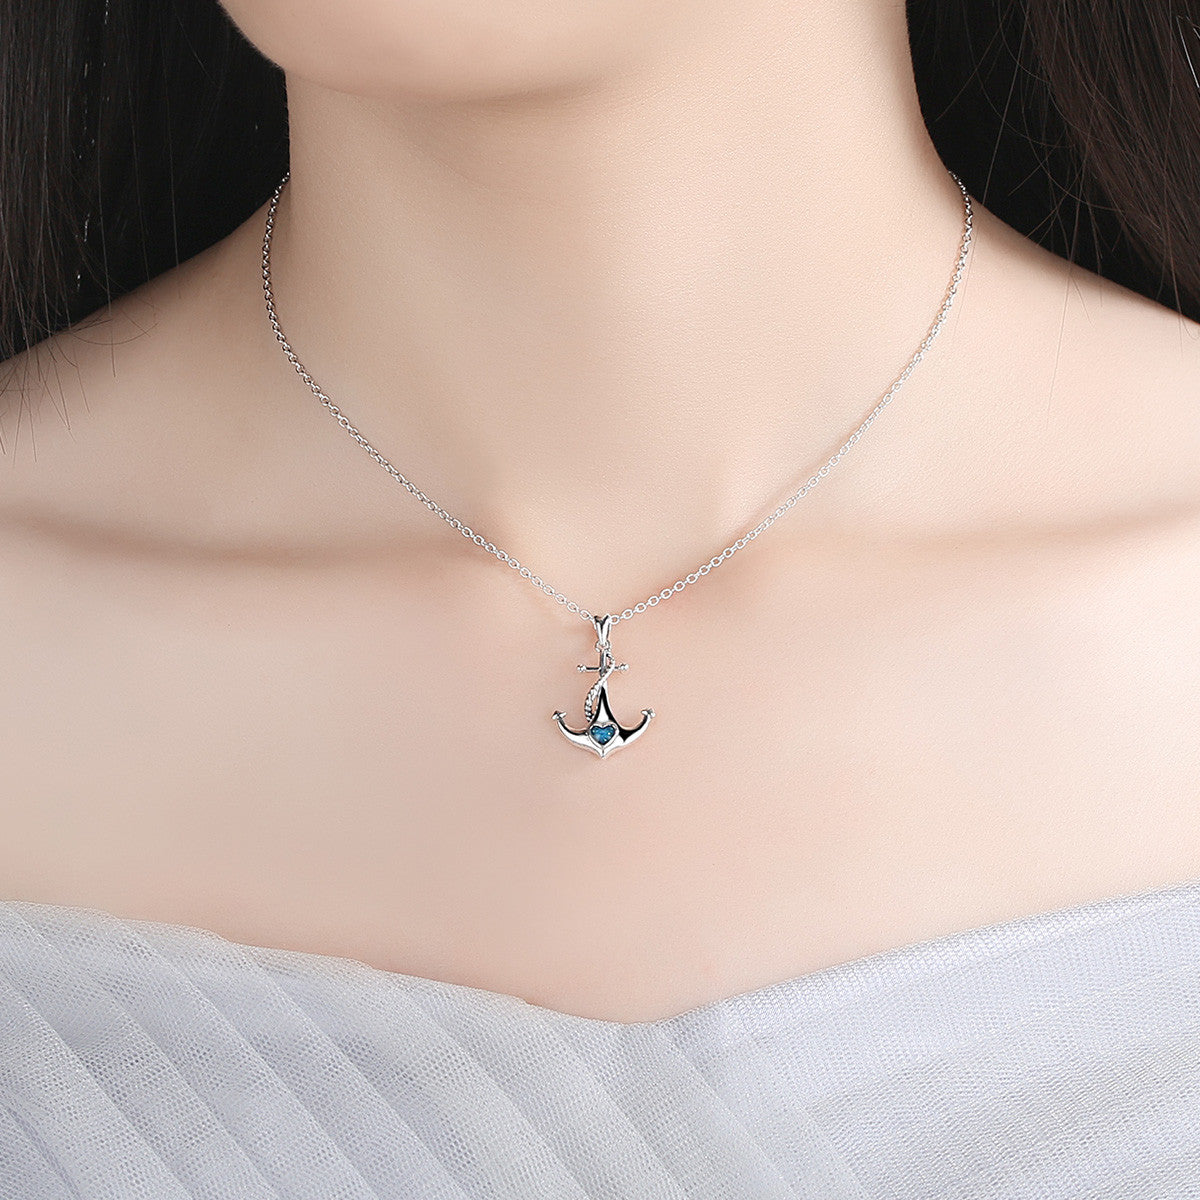 Classic 925 sterling silver blue heart crystal anchor pendant classic 925 sterling silver blue heart crystal anchor pendant necklaces women fashion jewelry engagement scn051 aloadofball Gallery